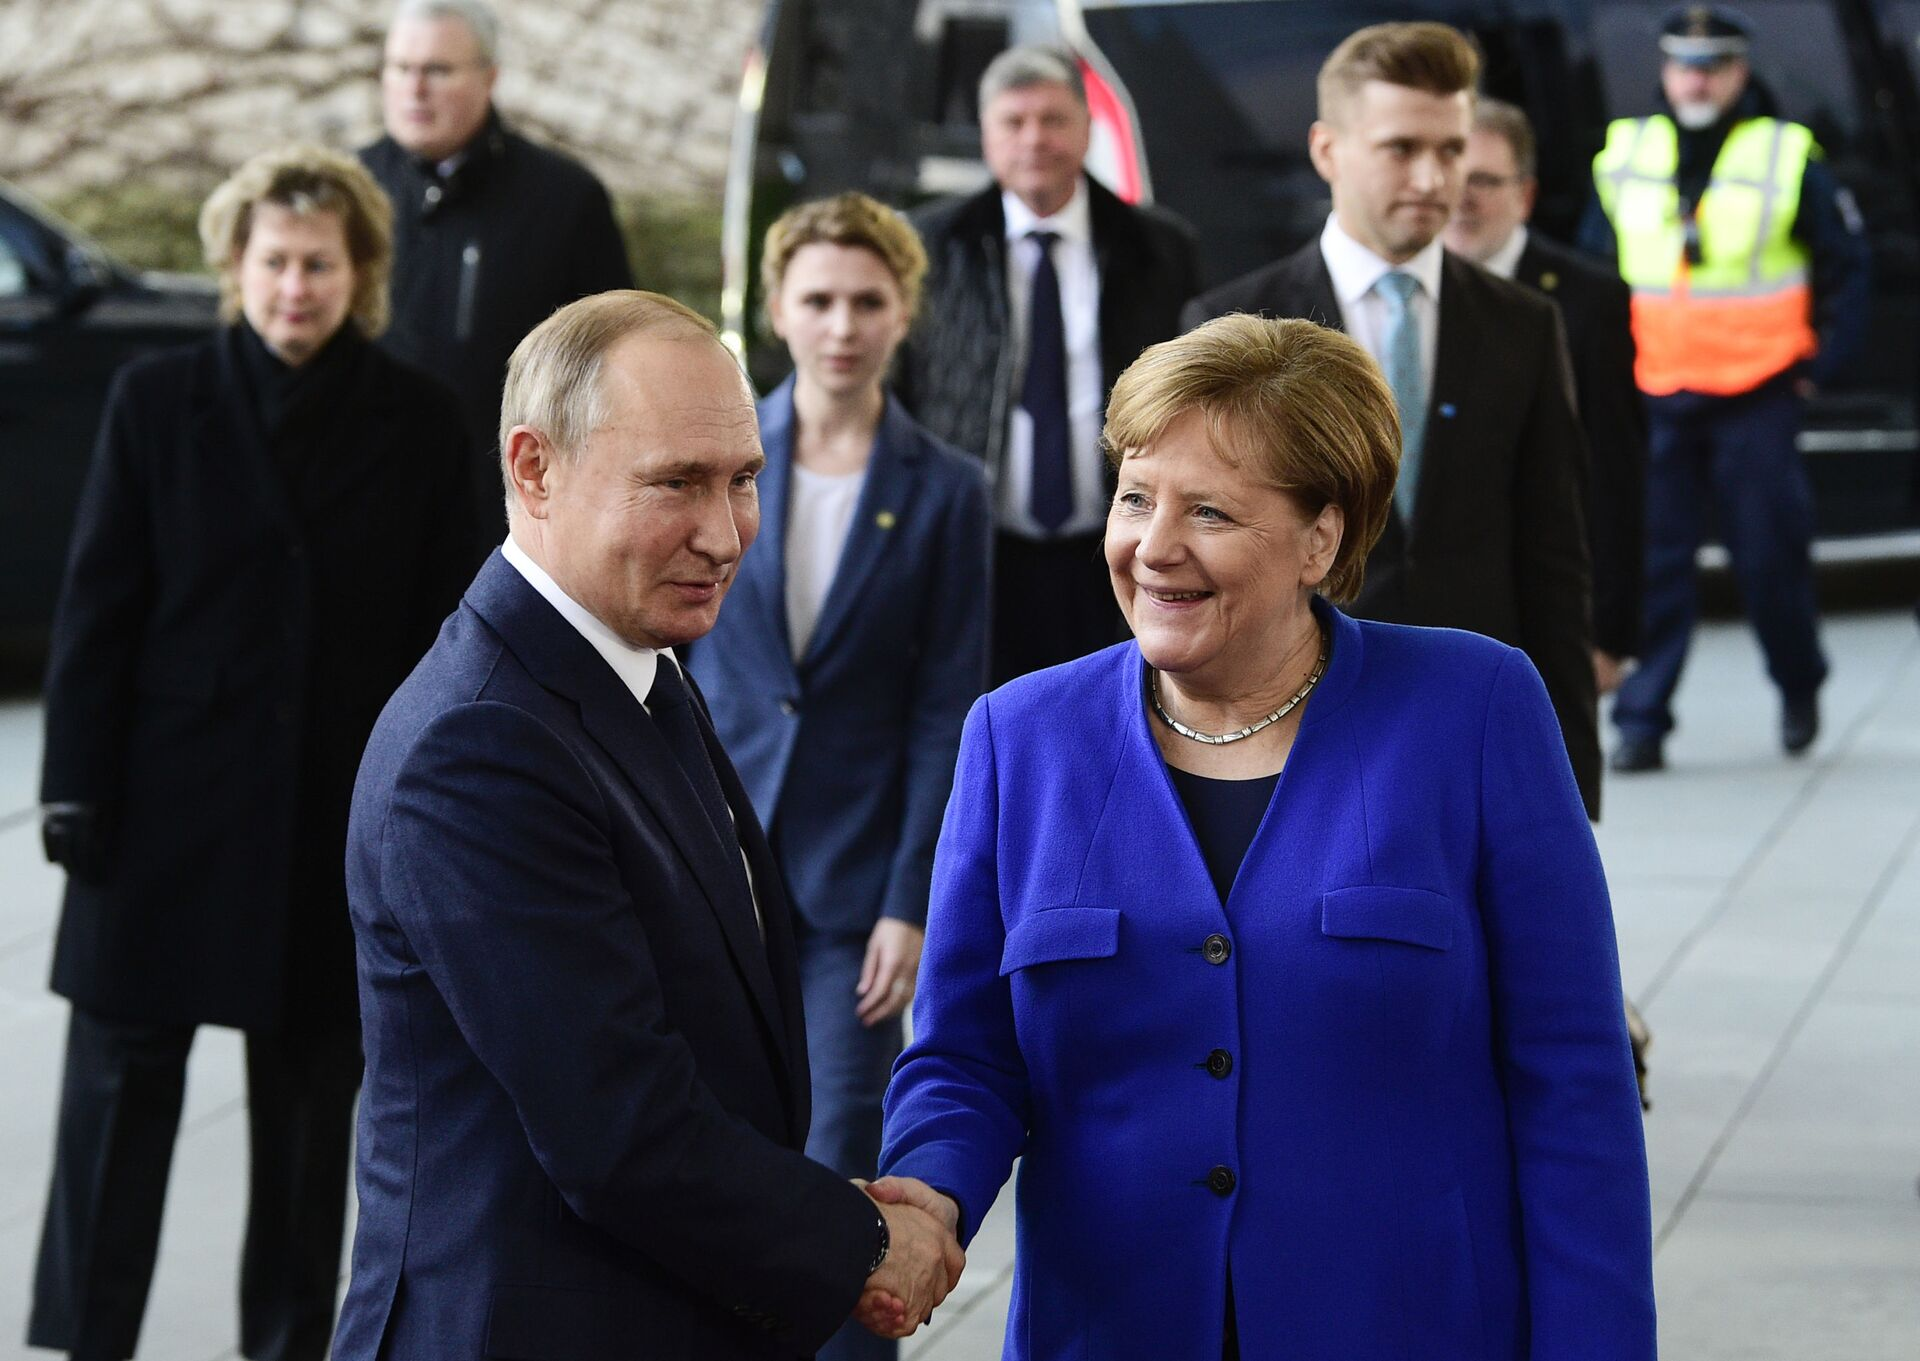 German Chancellor Angela Merkel, right, shakes hands with Russian President Vladimir Putin during arrivals for a conference on Libya at the chancellery in Berlin, Germany, Sunday, Jan. 19, 2020 - Sputnik International, 1920, 07.09.2021